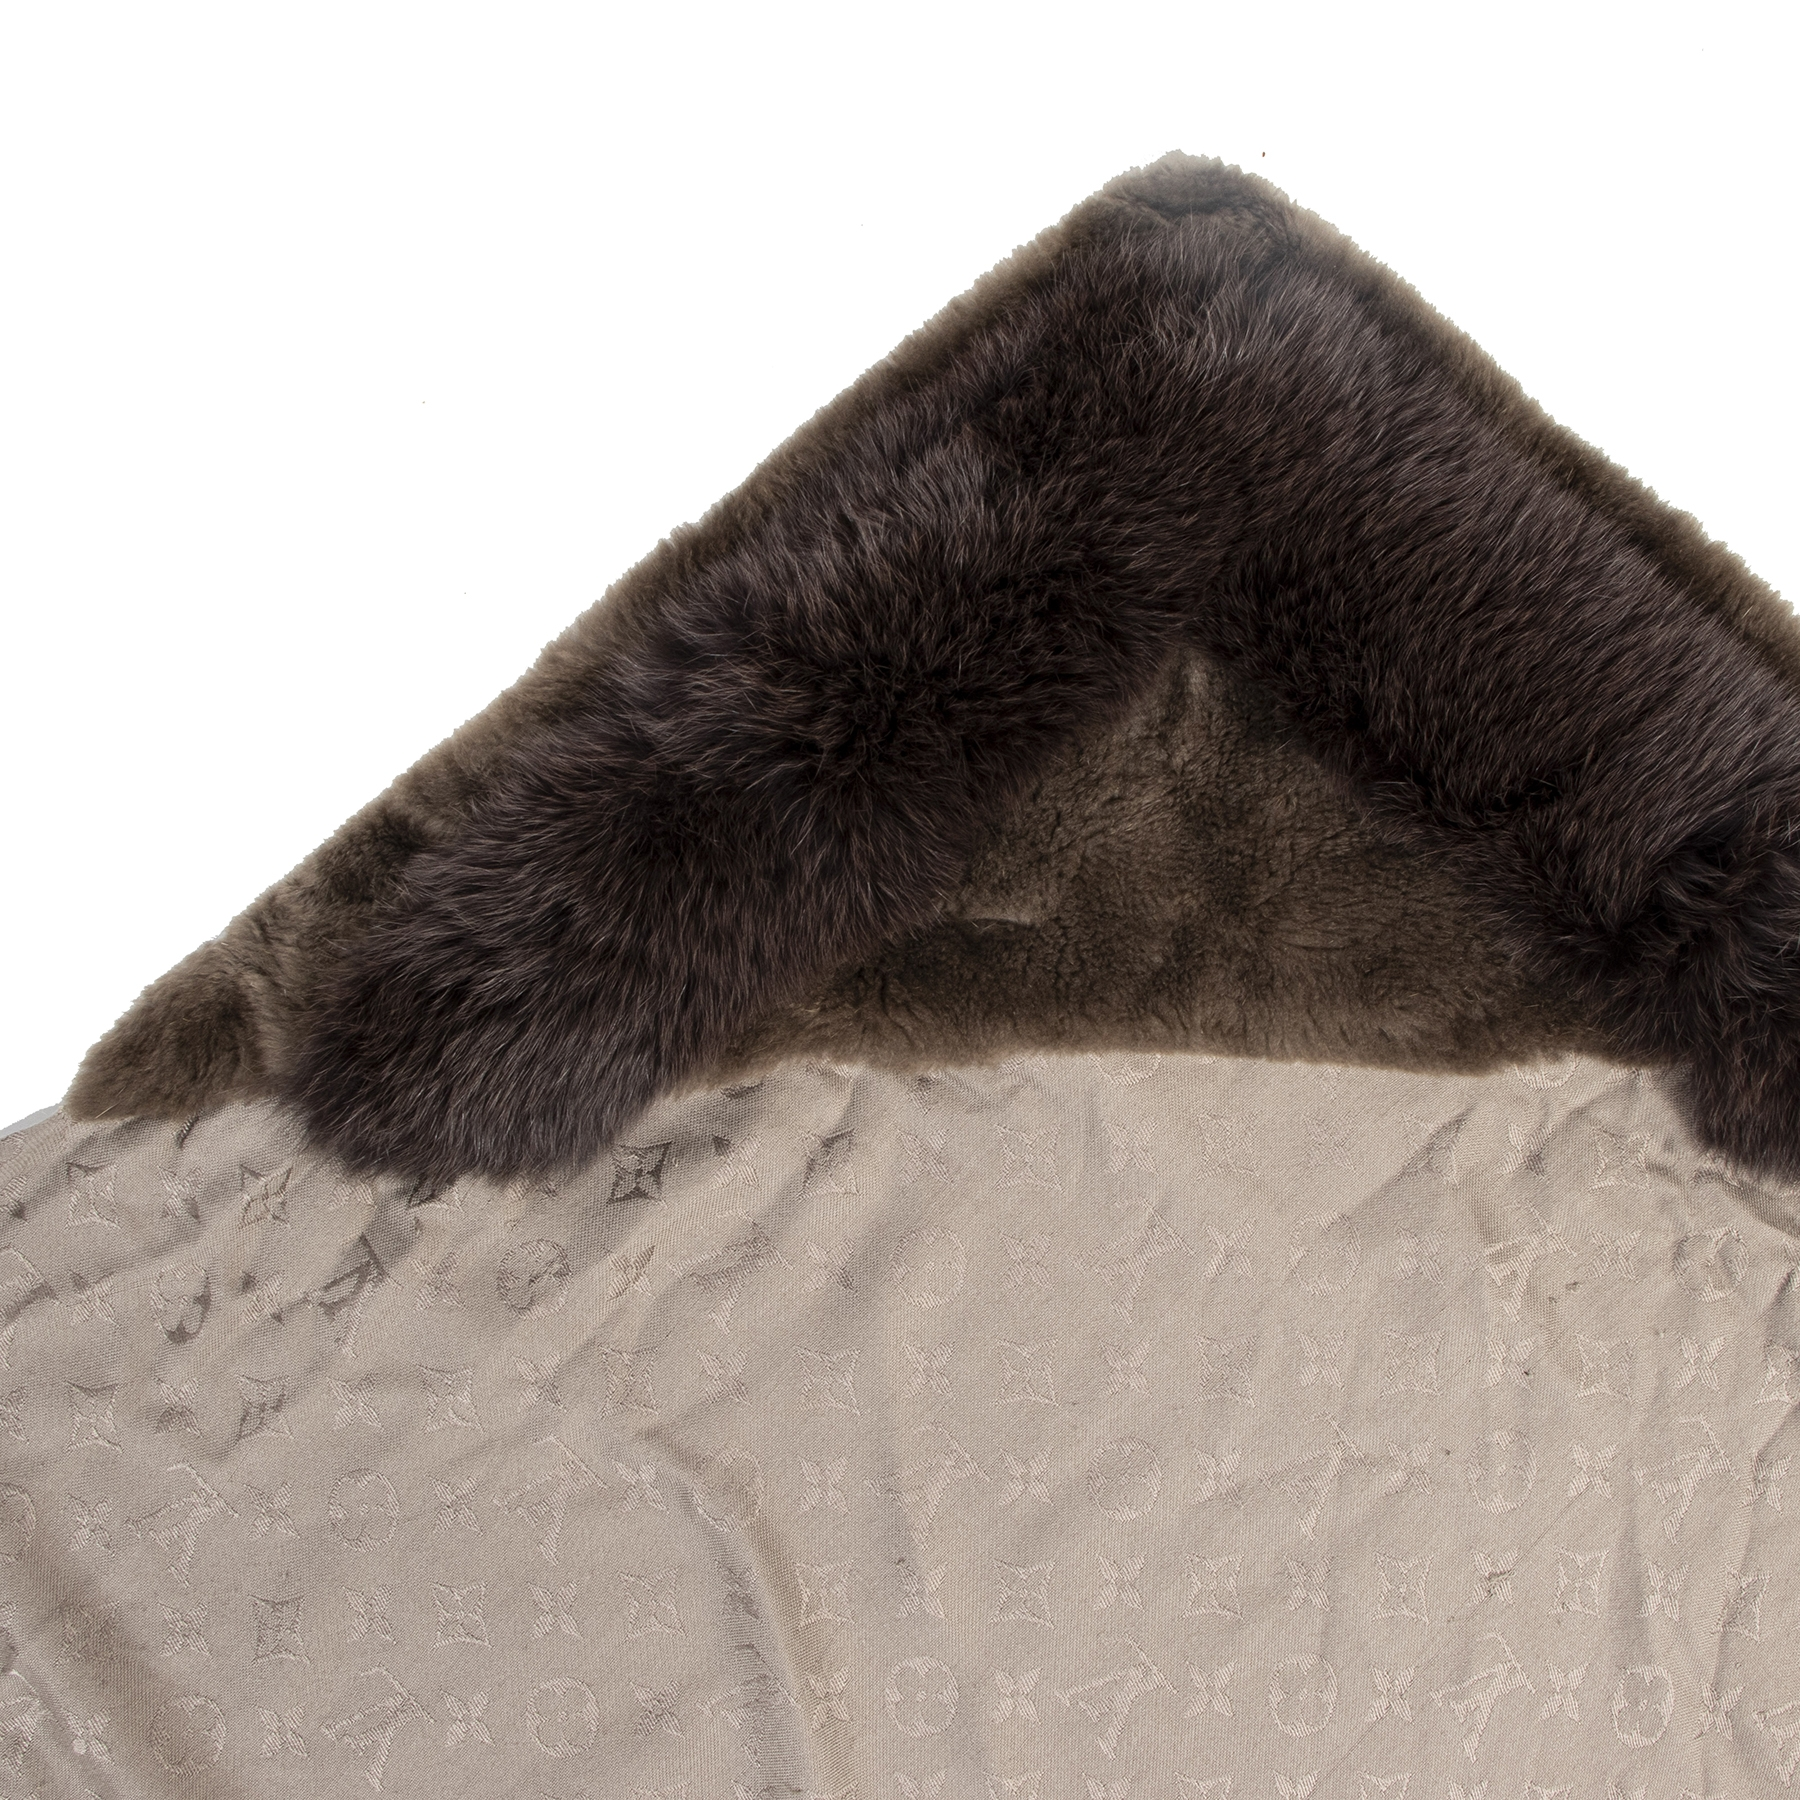 Authentique seconde-main vintage Louis Vuitton Monogram V Fur Verone Shawl achète en ligne webshop LabelLOV